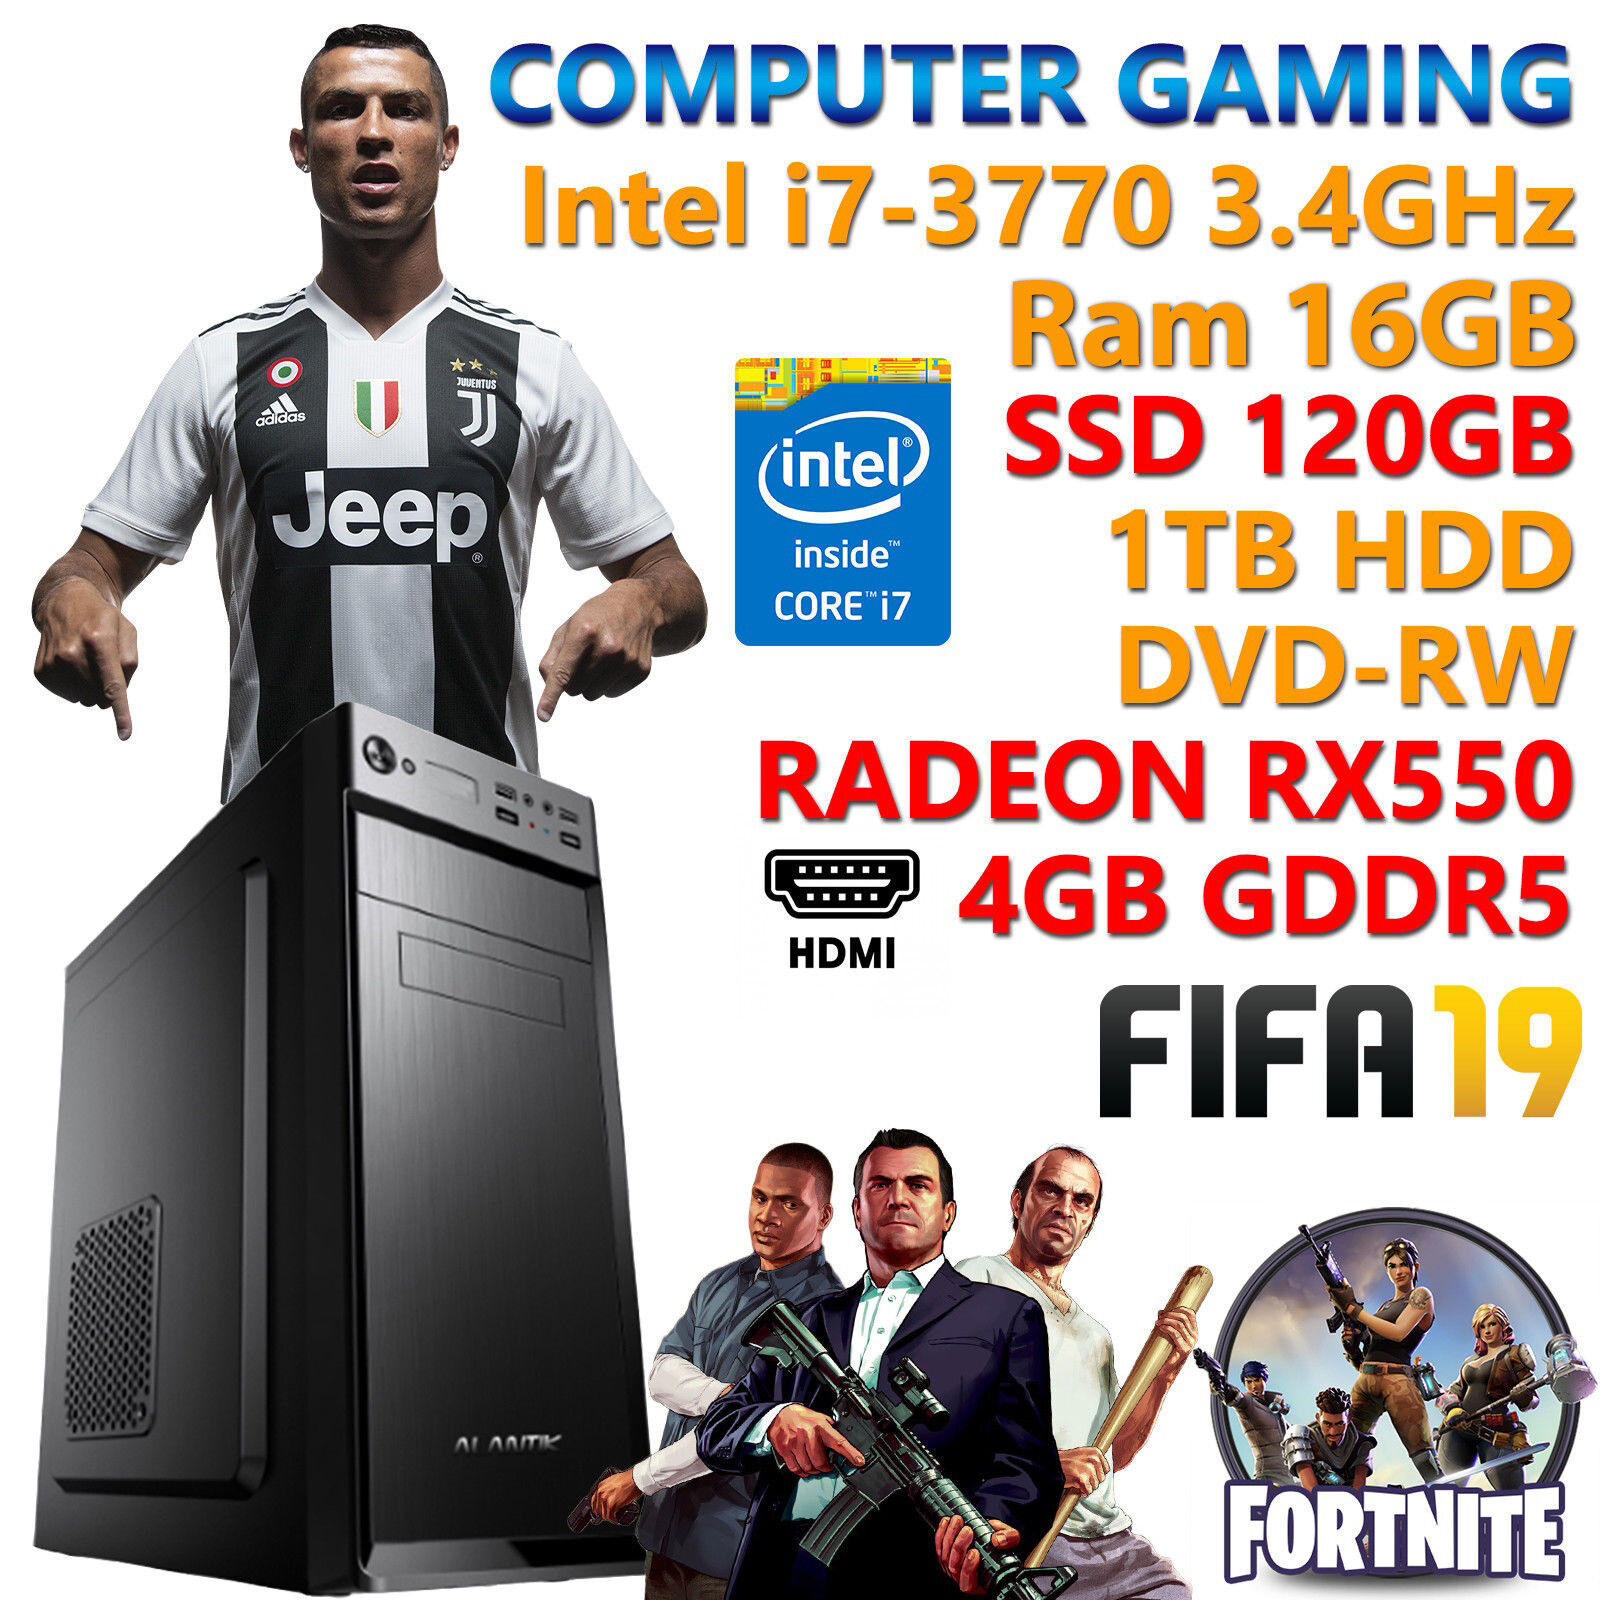 computer game - PC Computer Game Gaming Quad Core i7-3770 RAM 16GB SSD 120GB HDD 1TB Rx 560 4GB